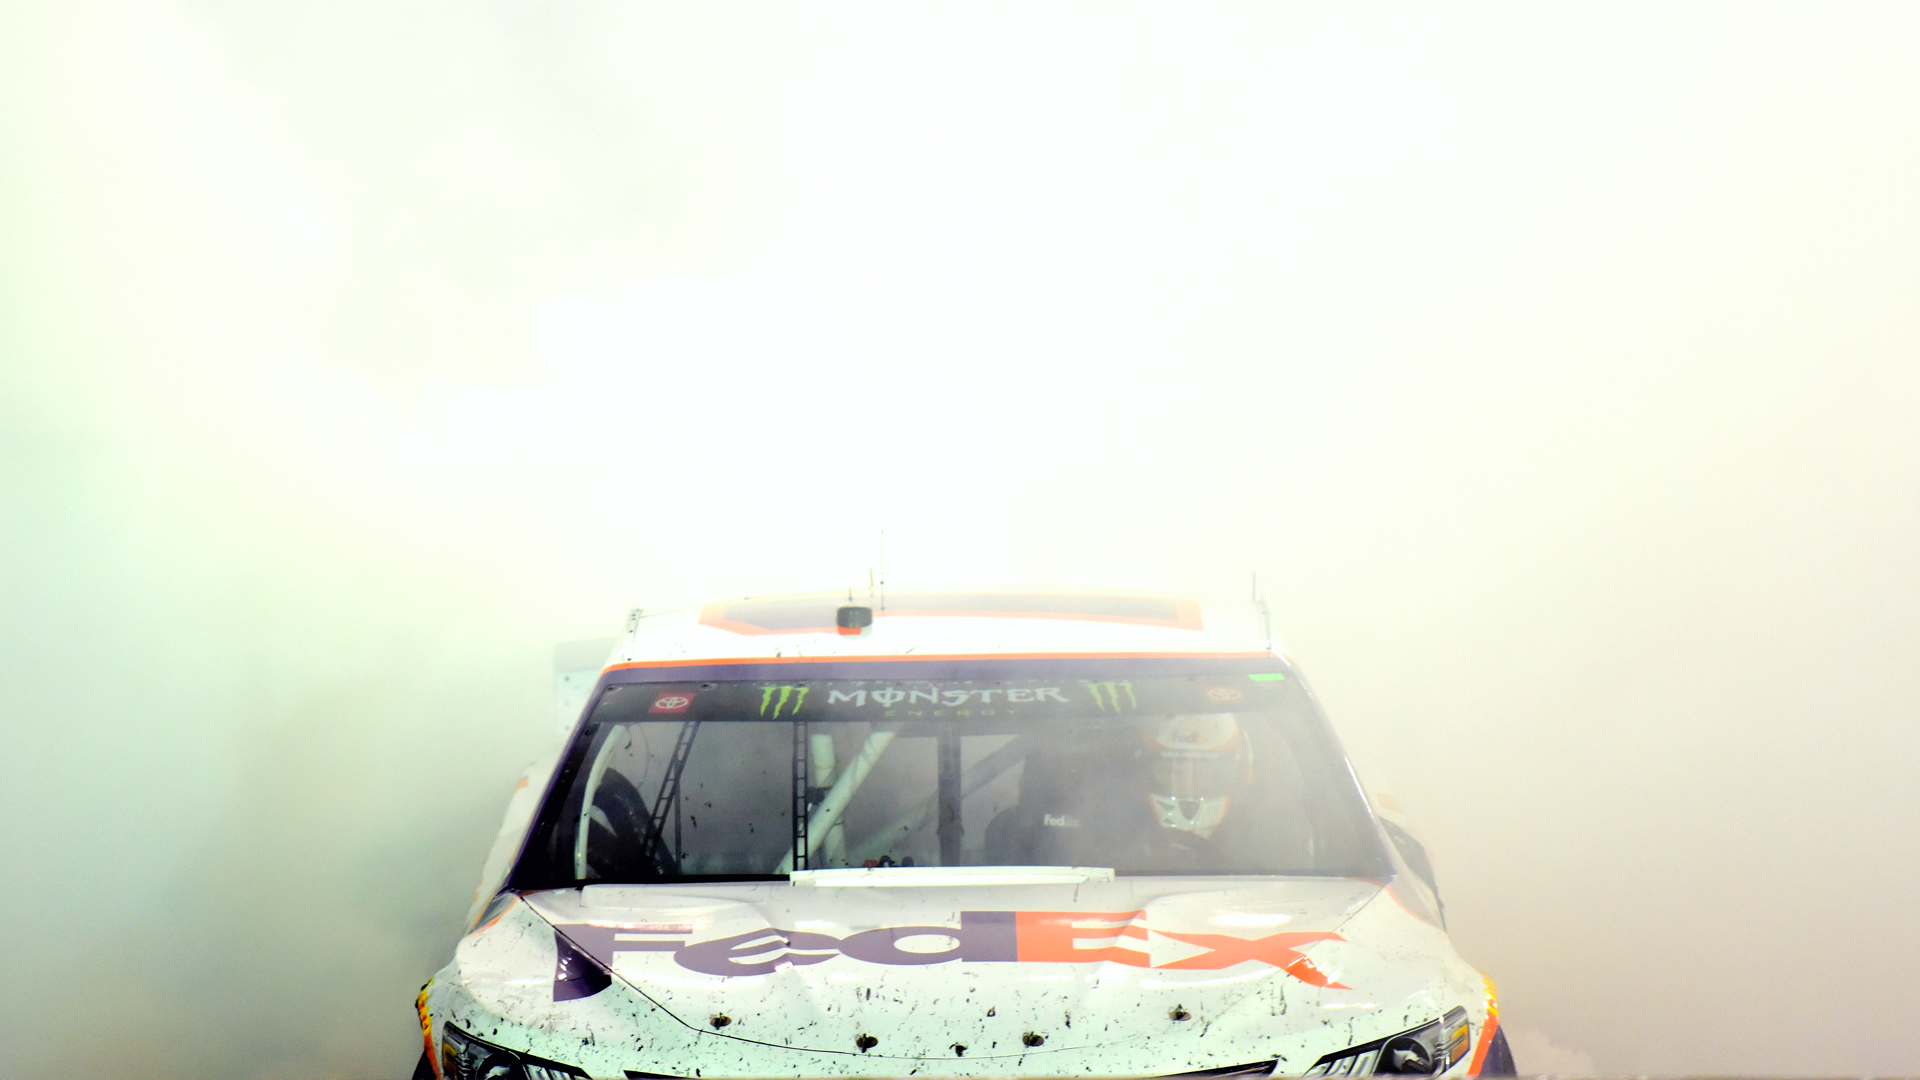 NASCAR dirt race 2021: Bristol track will be converted for Cup Series, per report